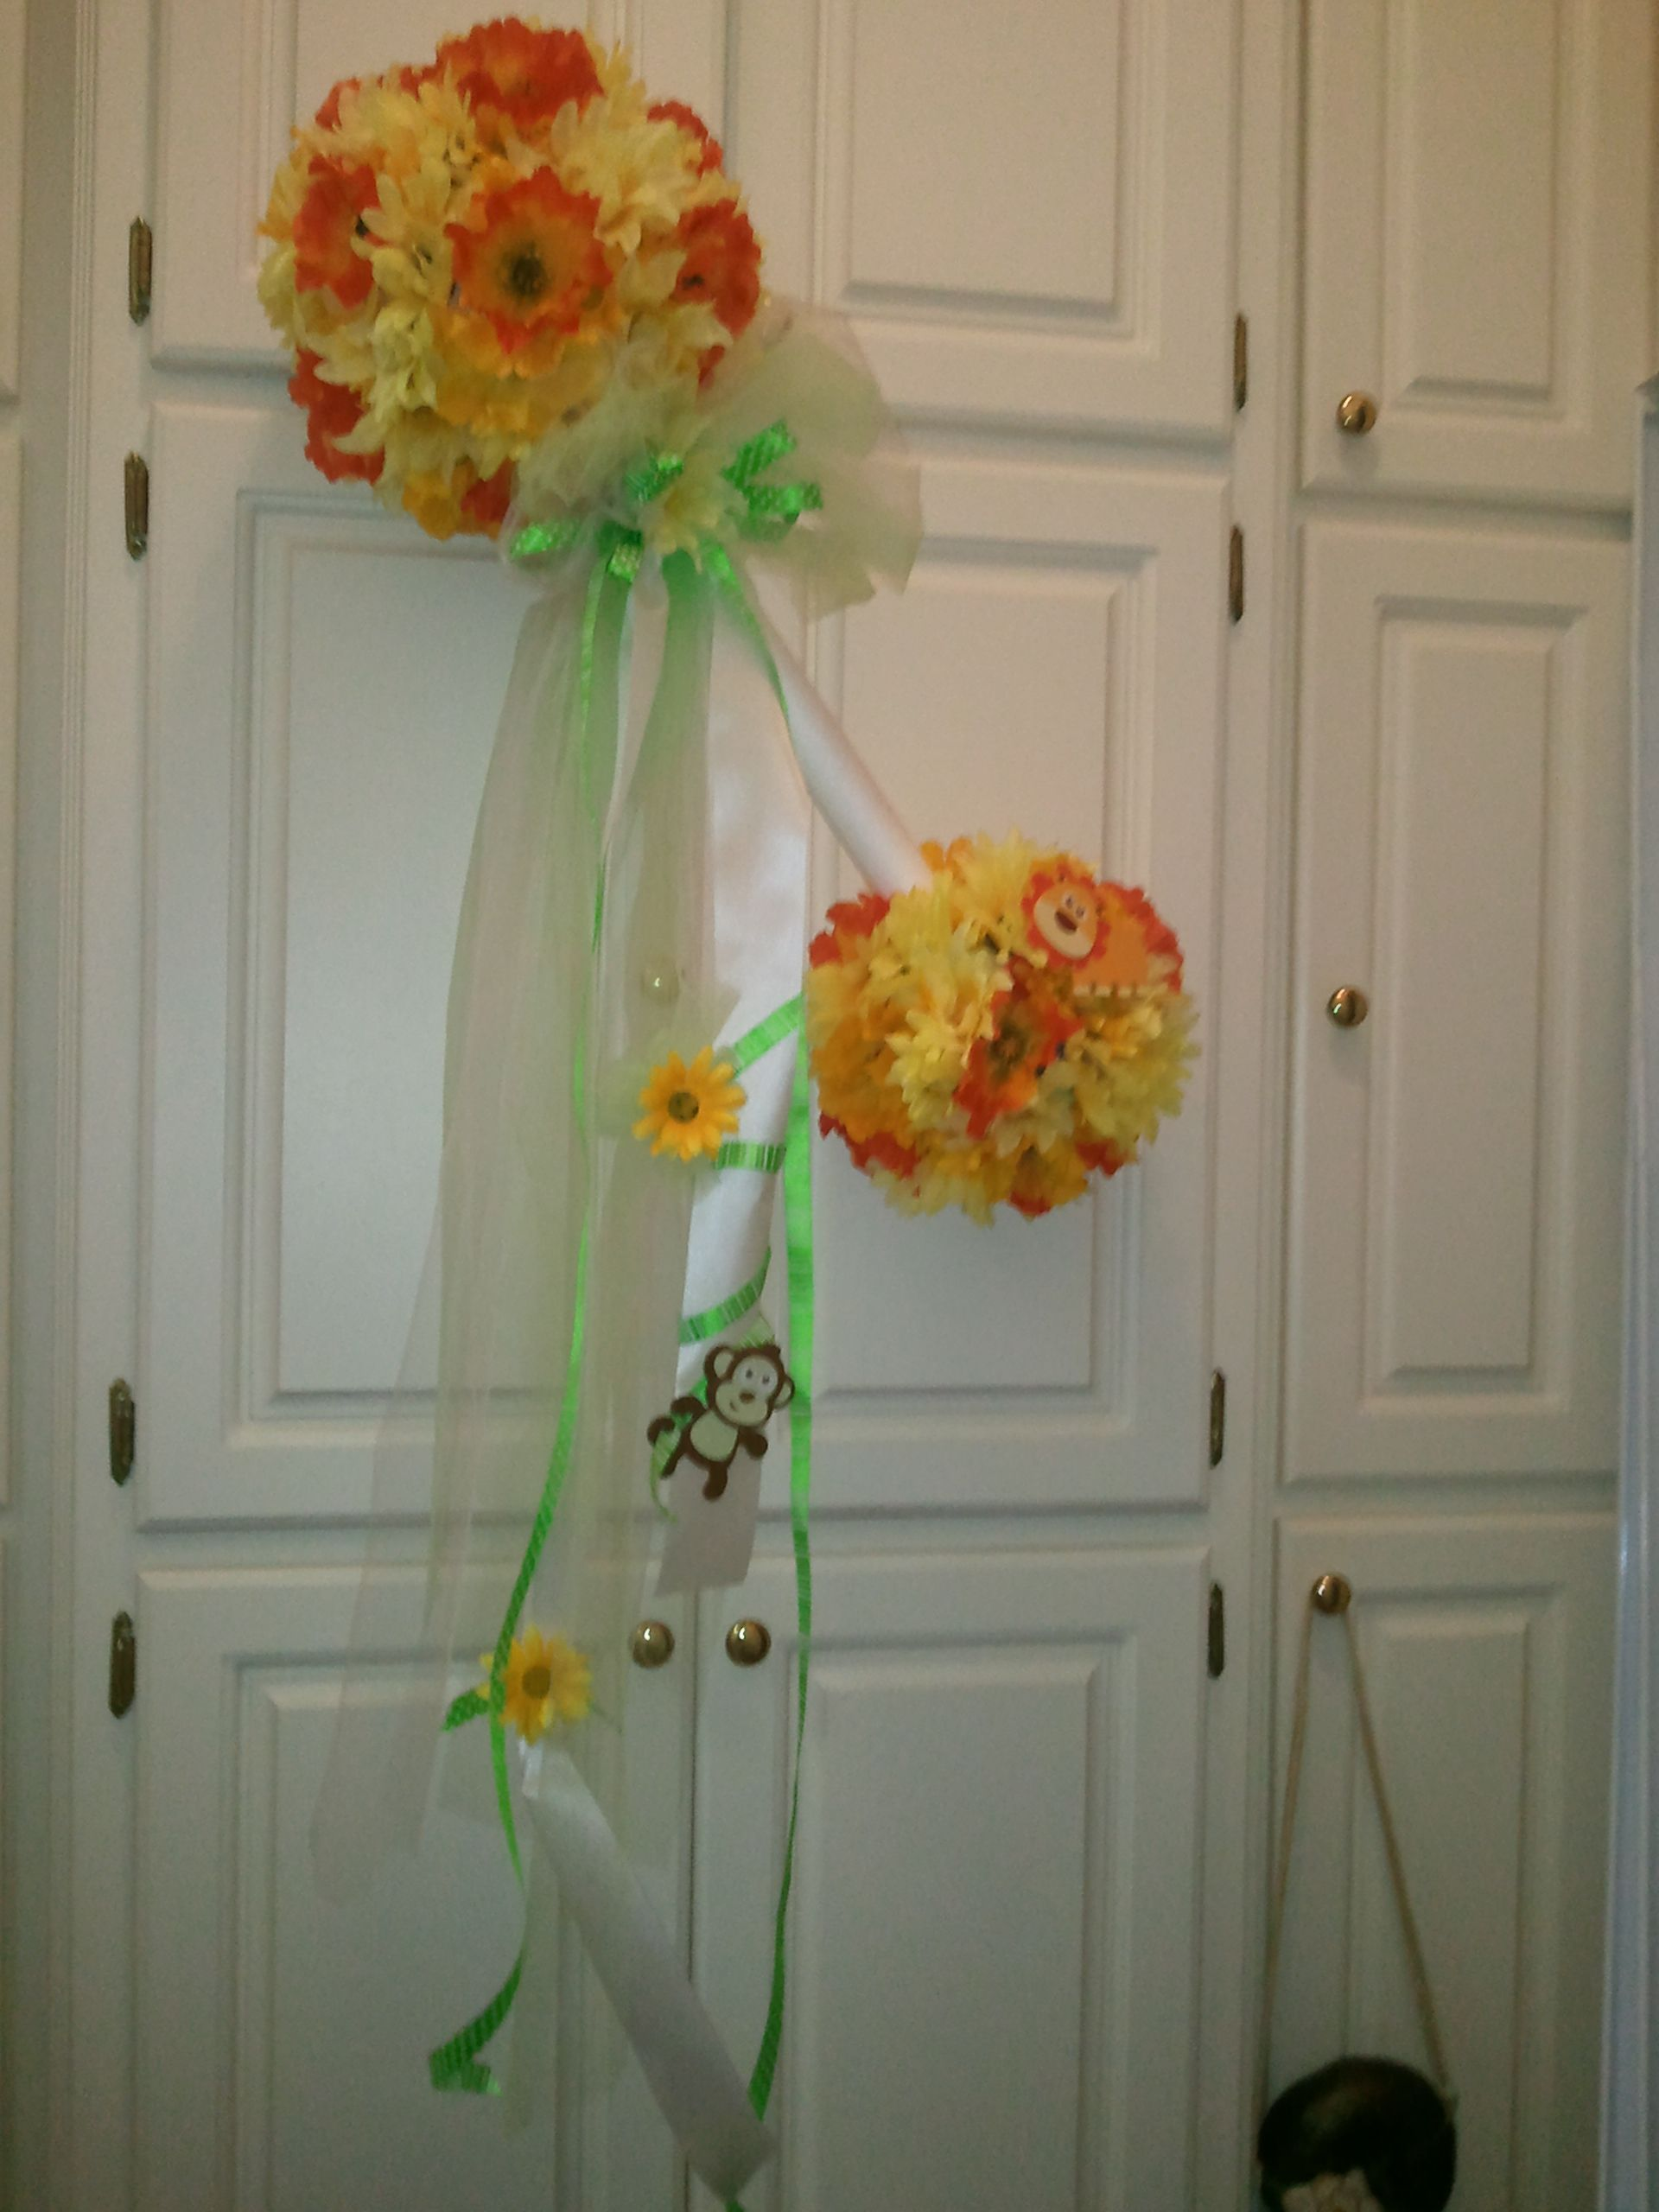 Flower baby rattle for door decoration or hospital door or even mailbox